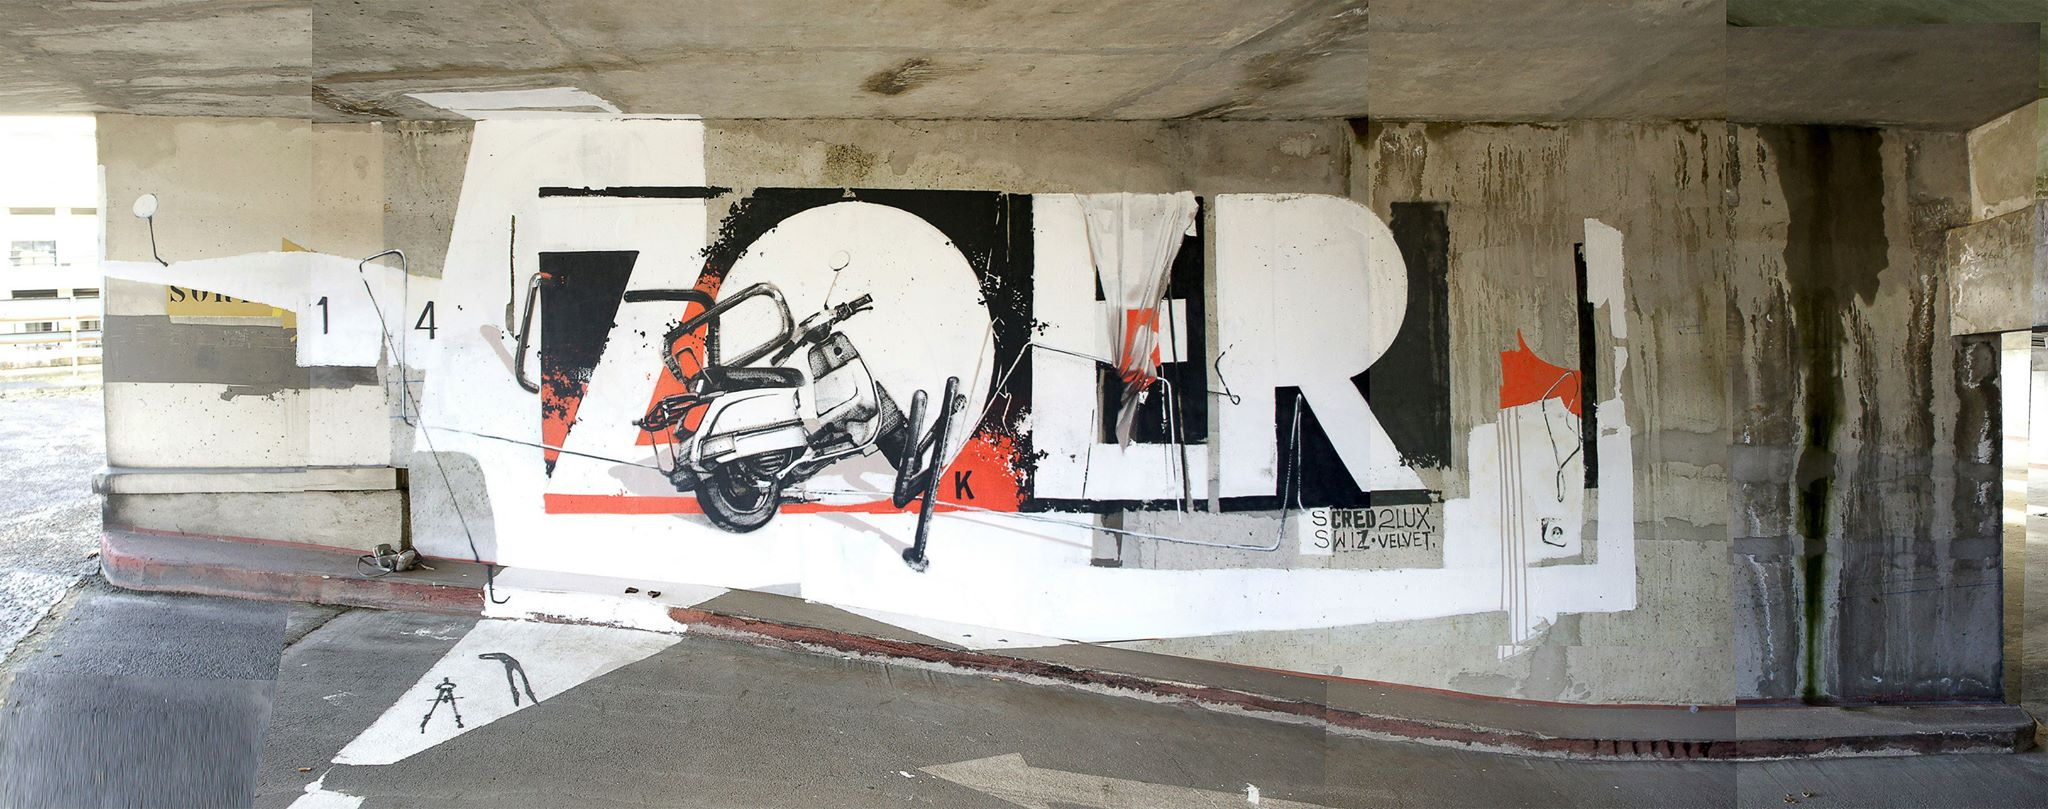 Zoer • Paris 2014